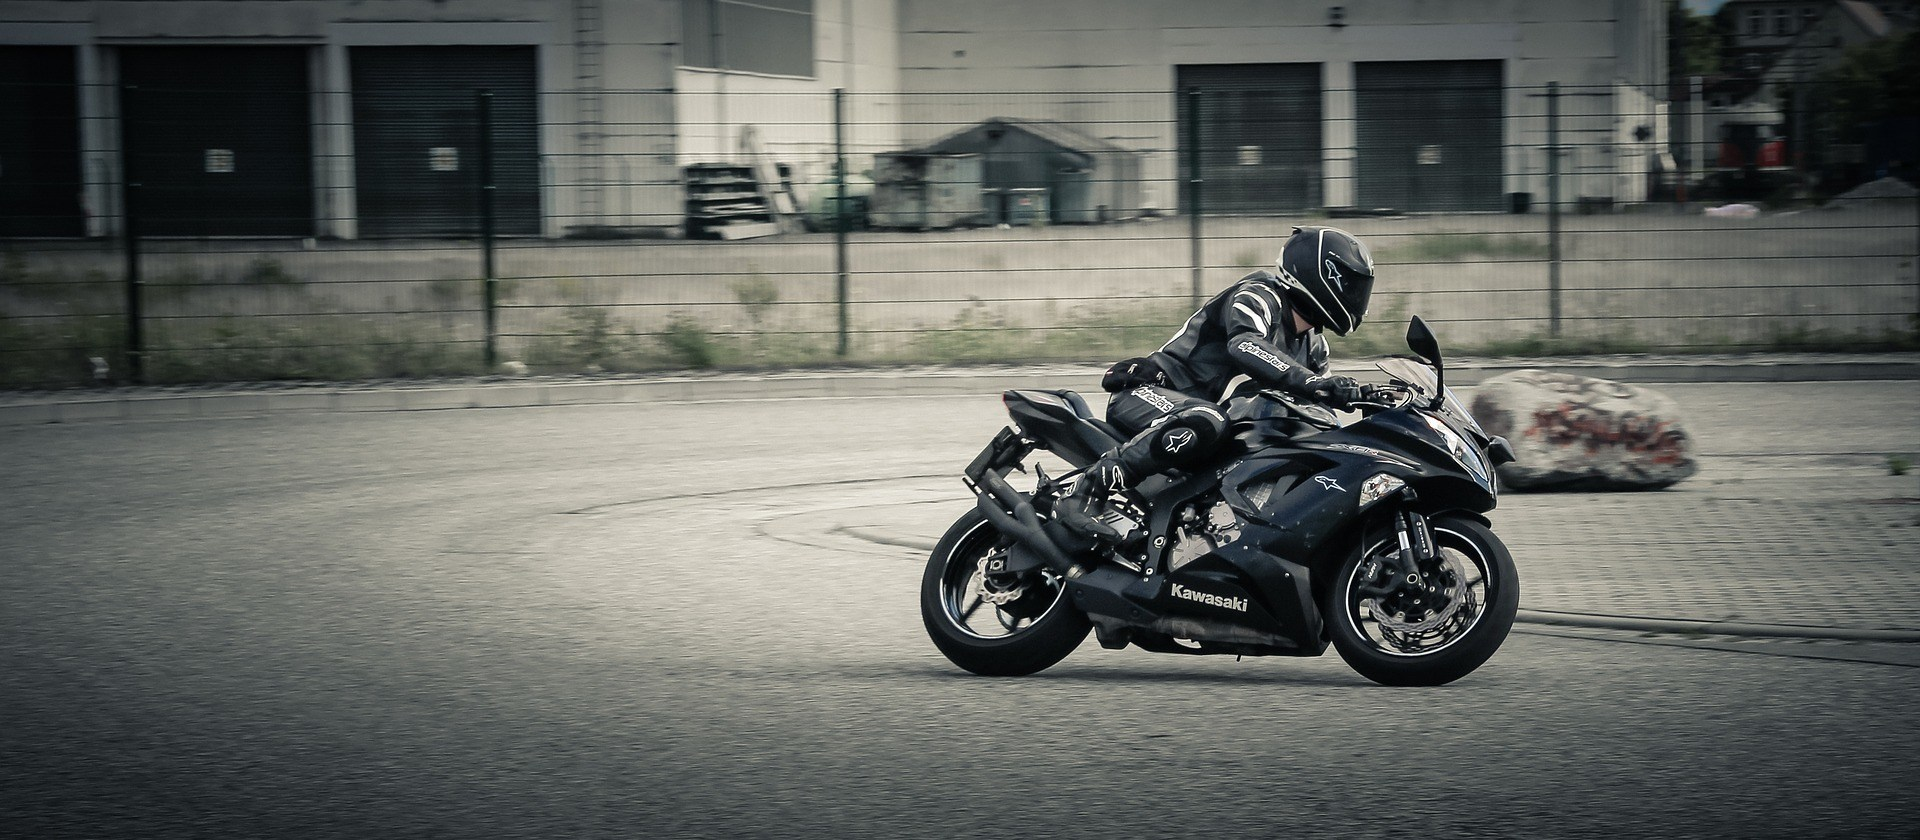 testing a black motorcycle